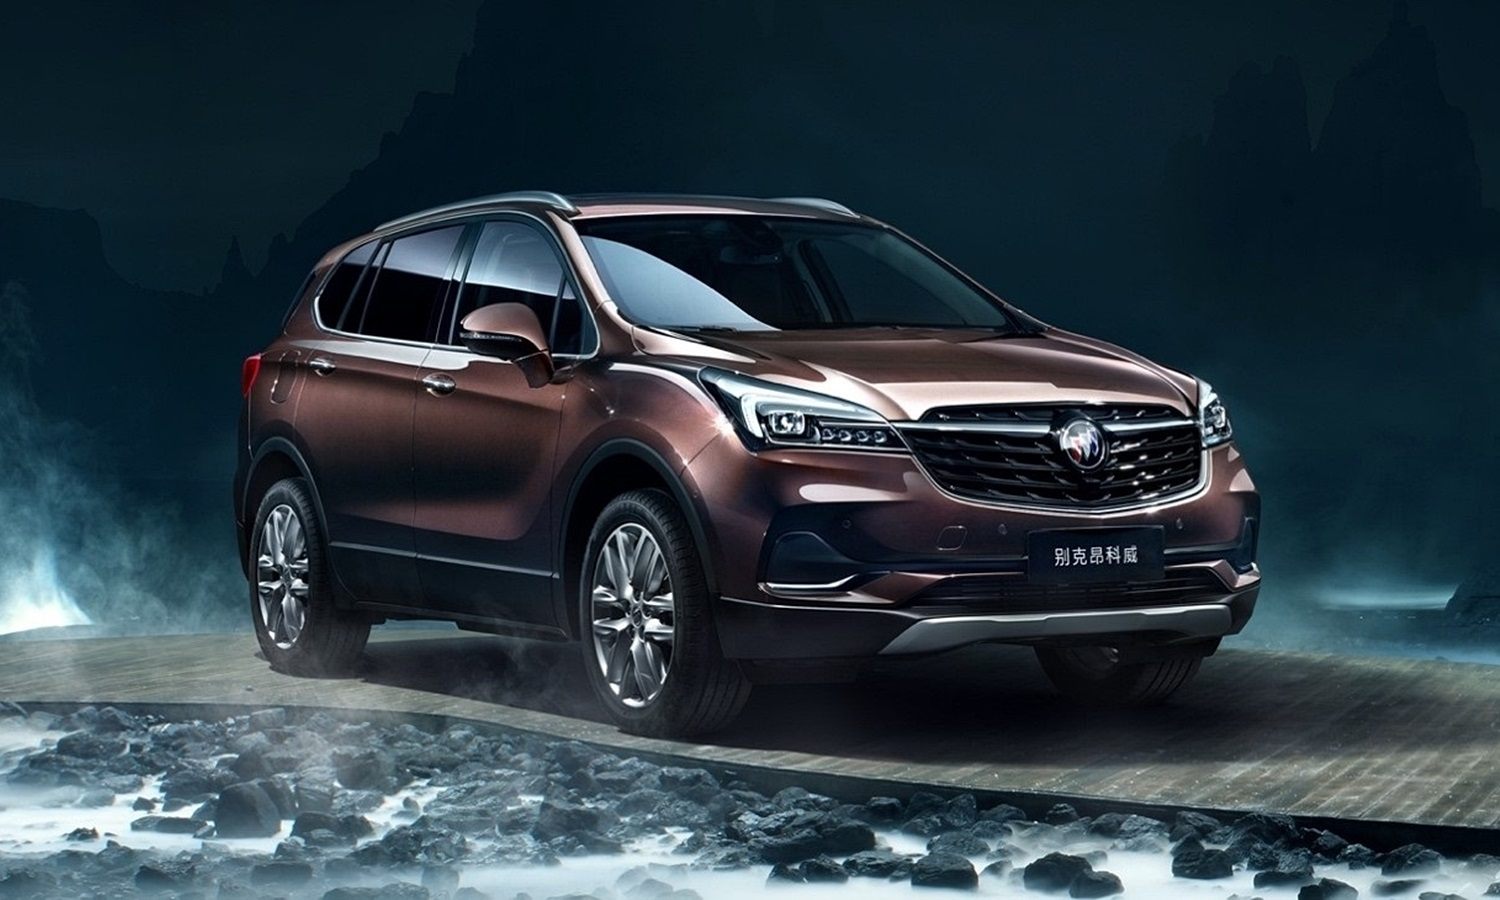 Buick Envision Set For Refresh This Year | Gm Authority 2021 Buick Envision Lease Deals, Interior Dimensions, Engine